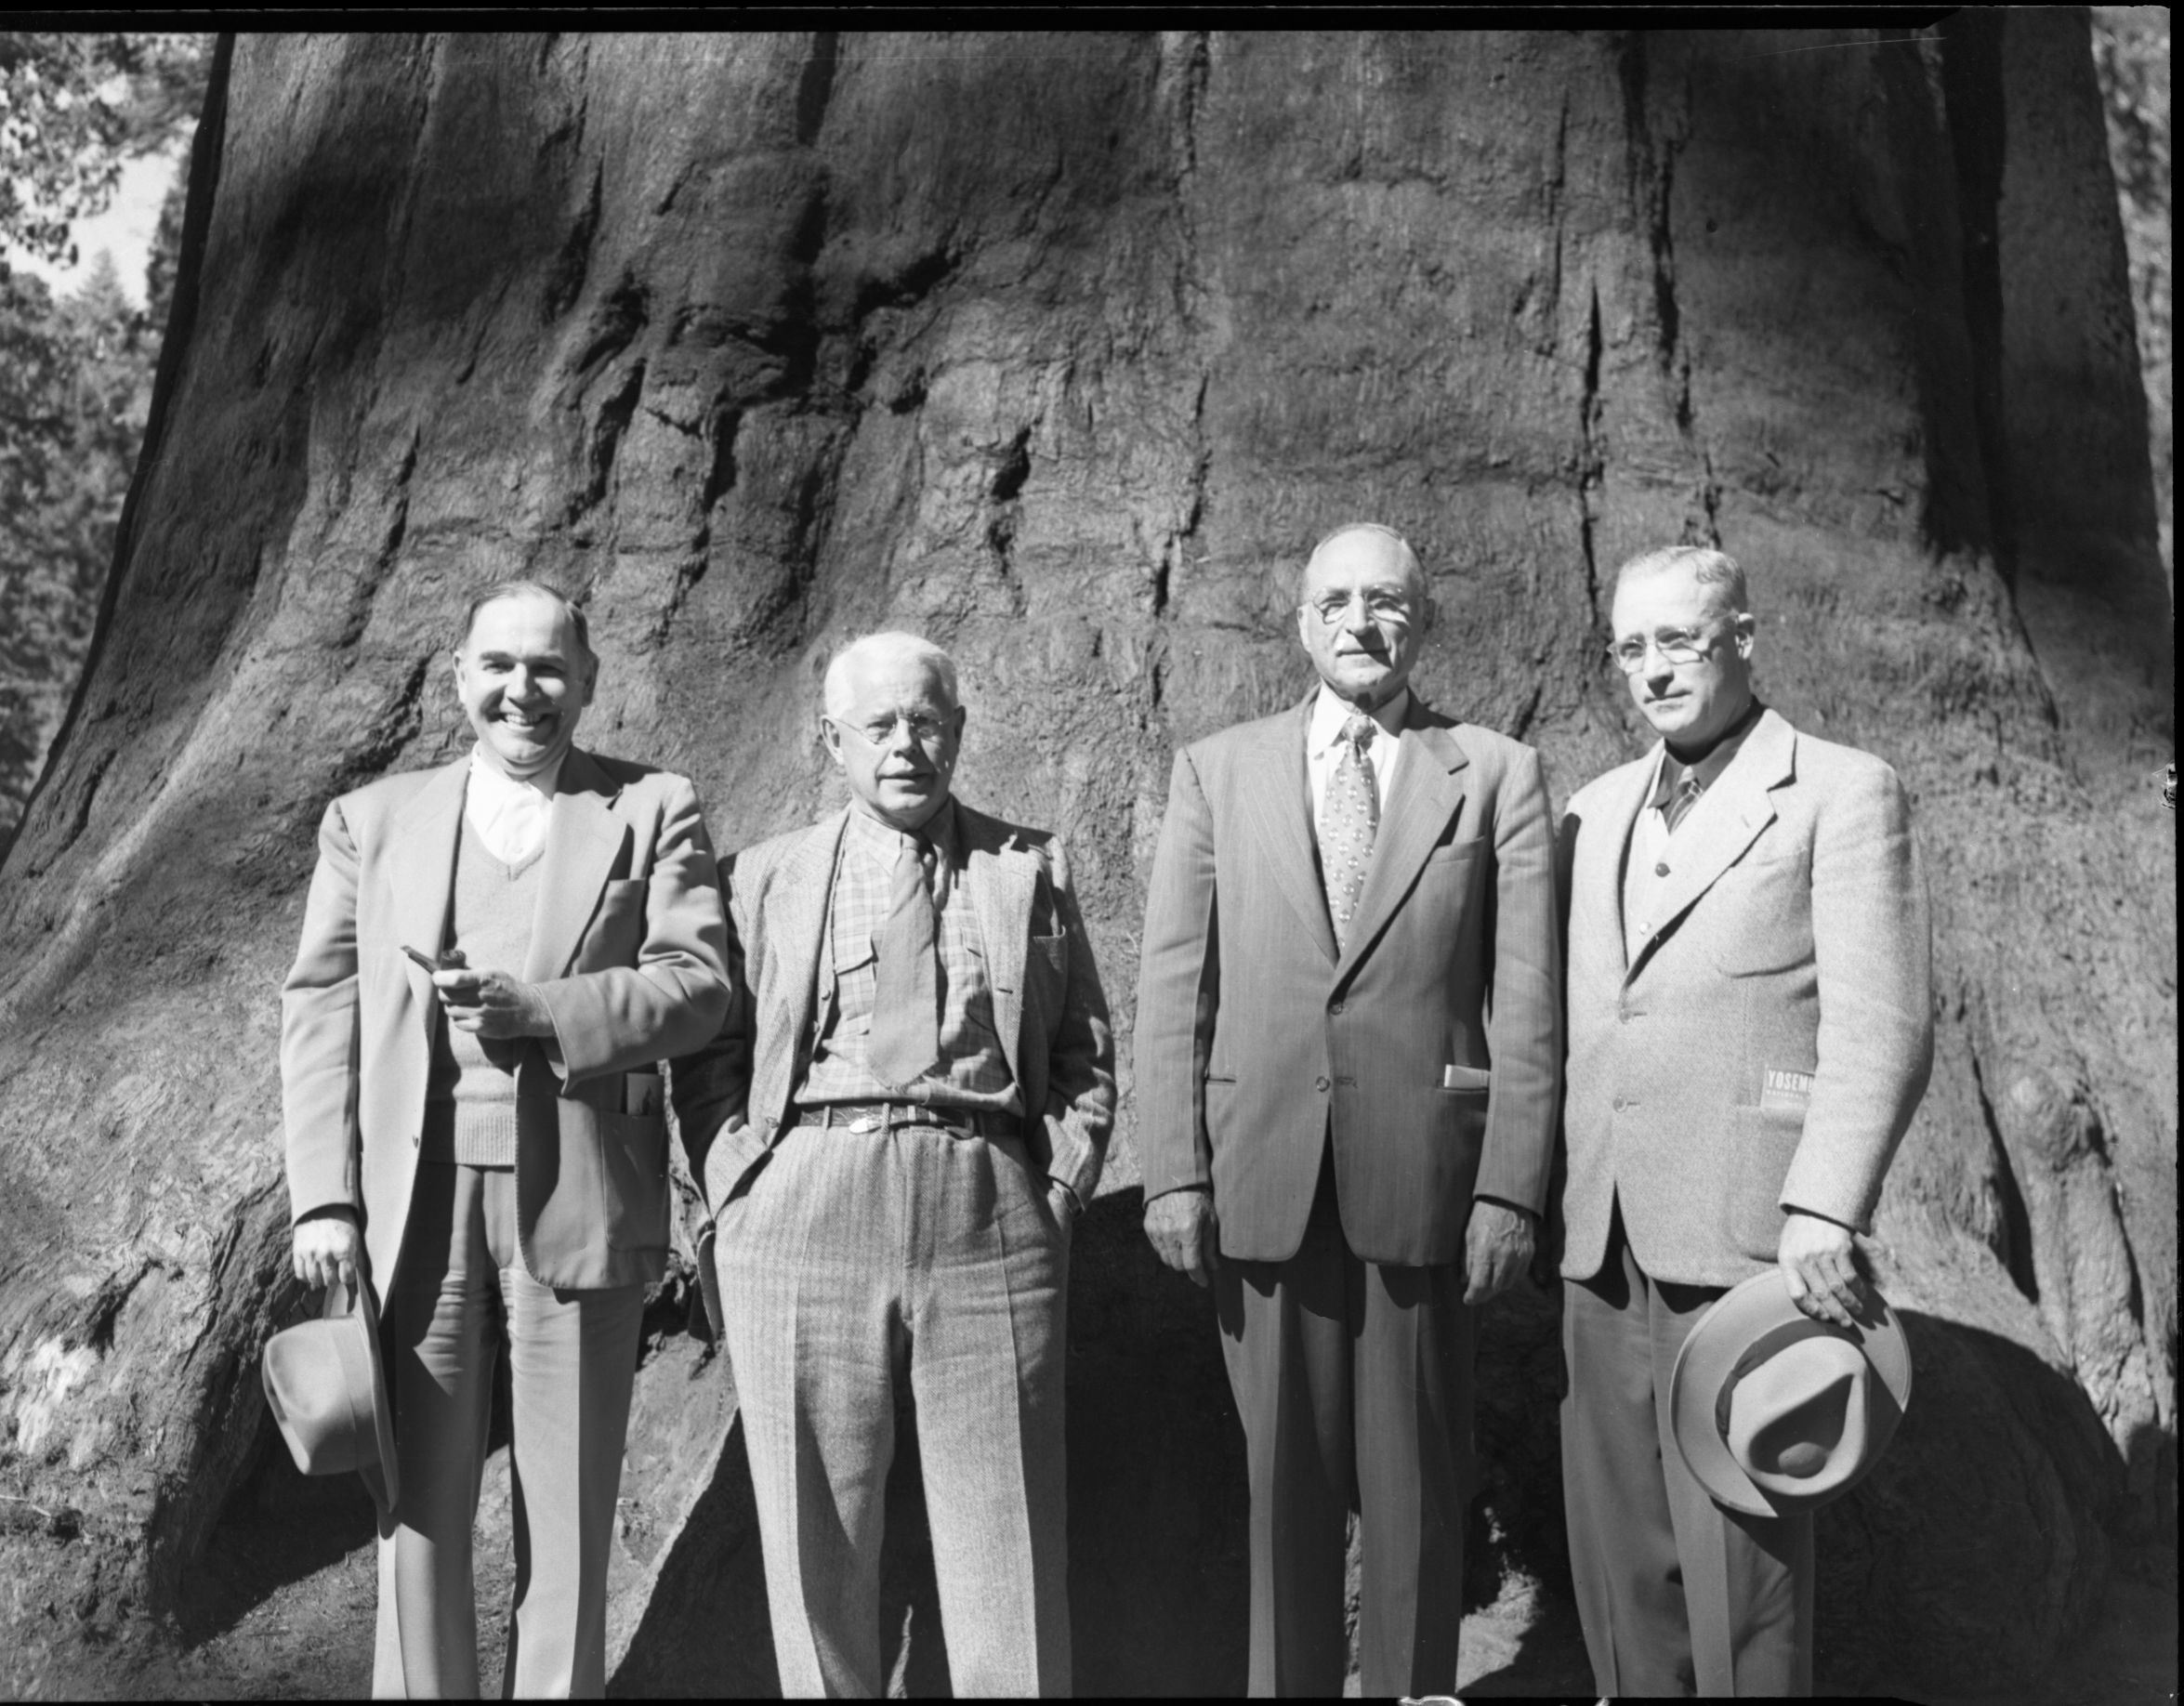 L to R: L.C. Merriam, Arthur Demaray, O.A. Tomlinson, and Hillory Tolson